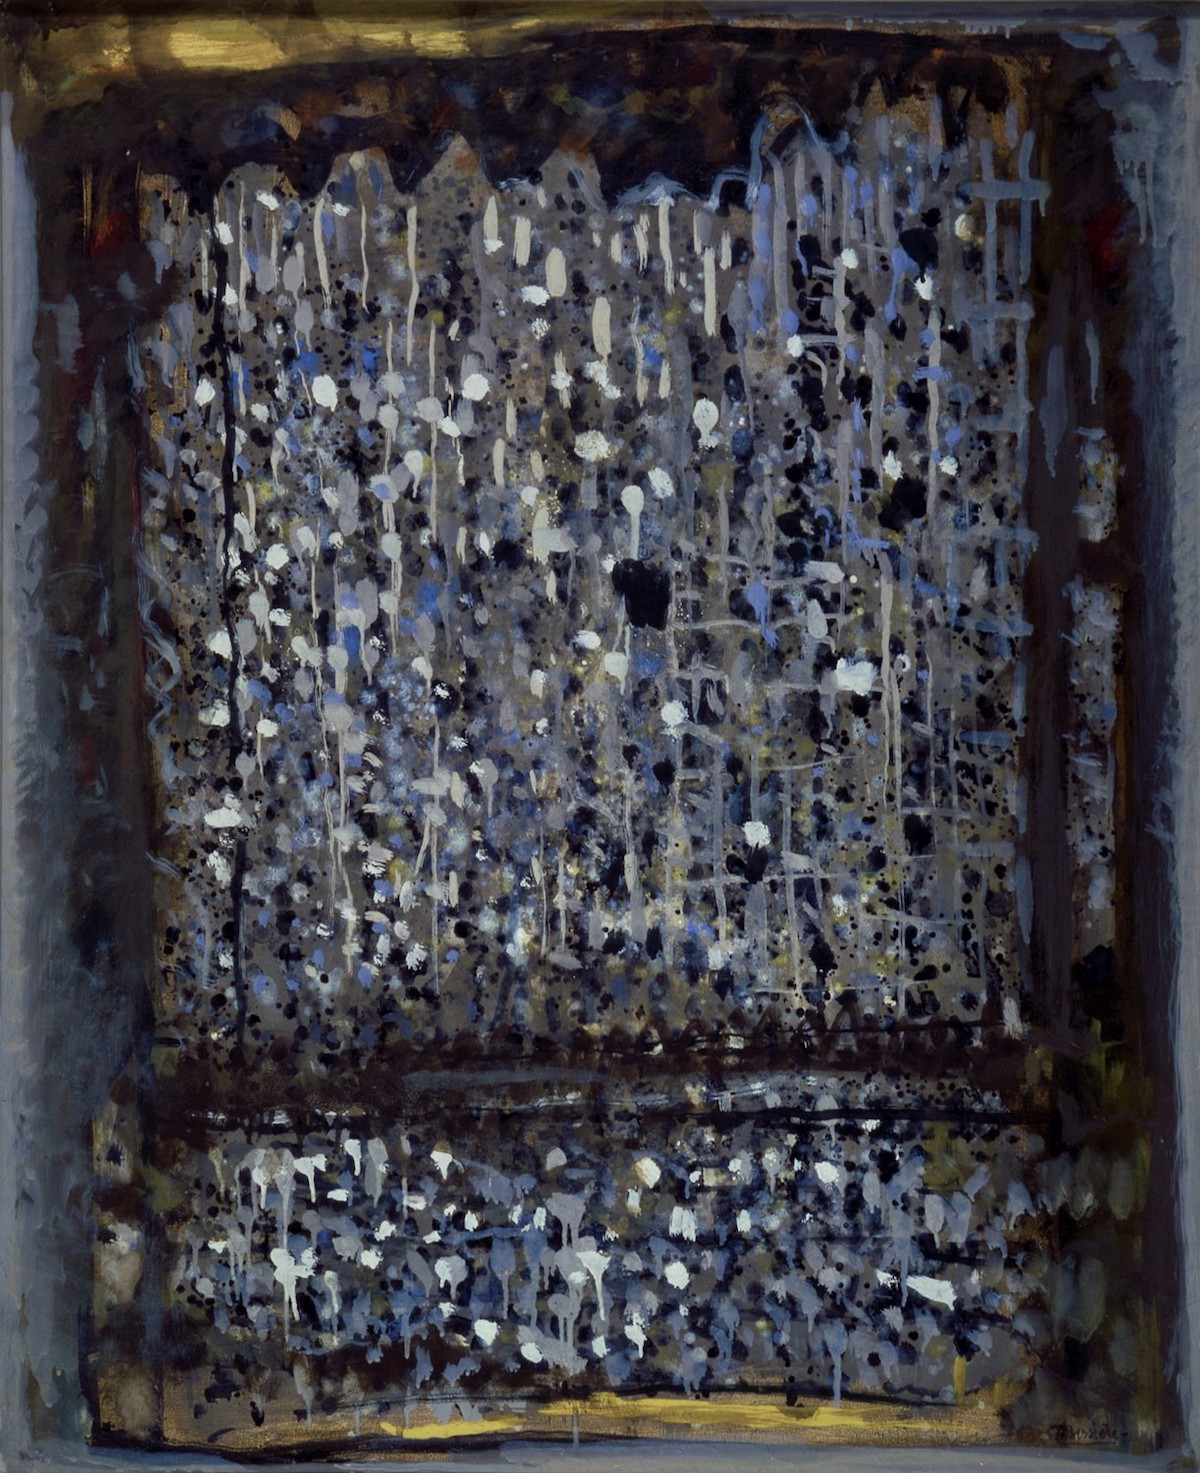 Roger Bissière, Silence du crepuscule, 1964, oil on mattress ticking, 39-3/8 x 32 inches (© Bissiere/ADAGP)